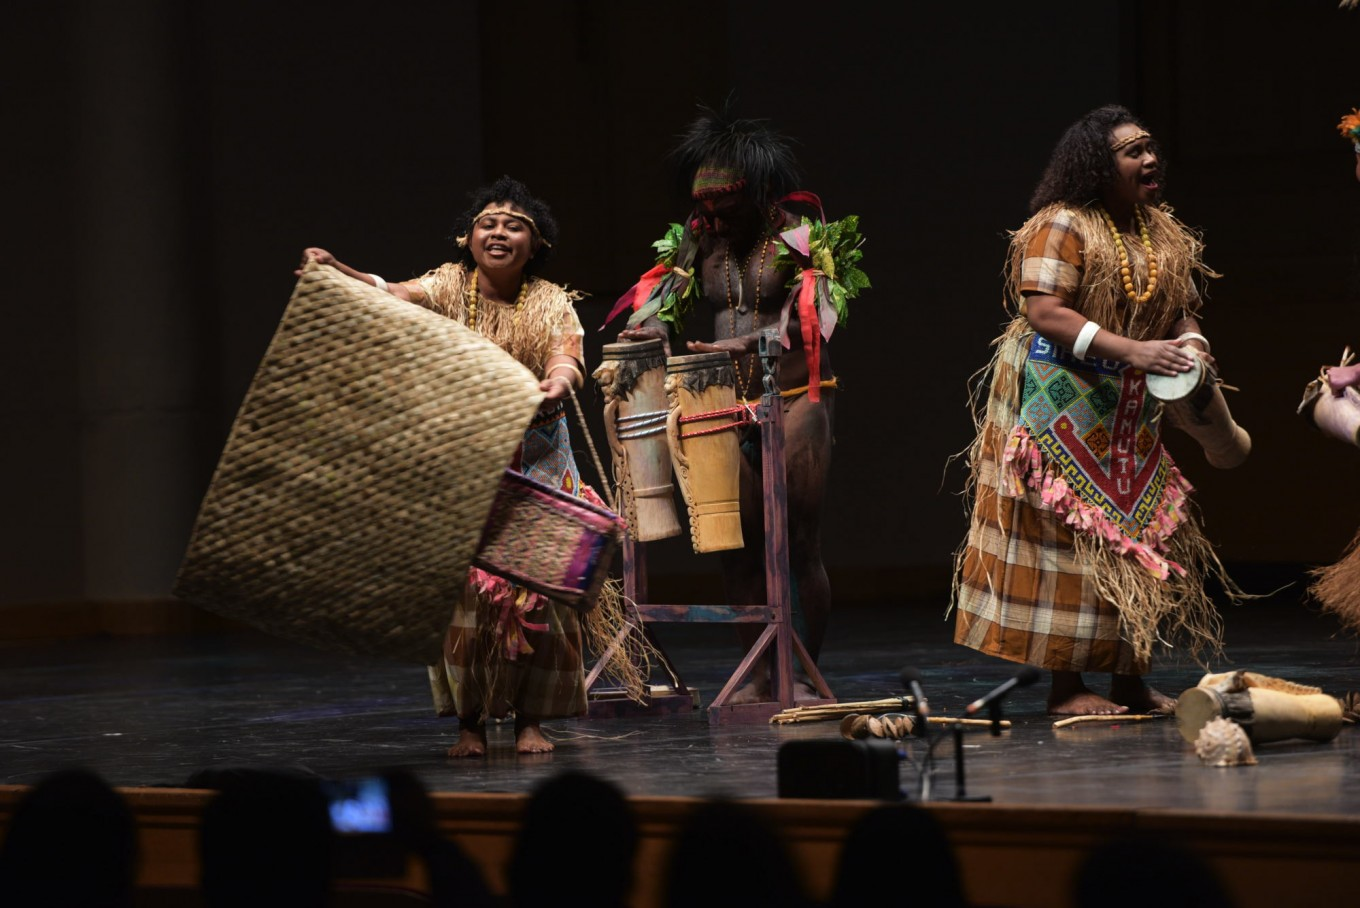 Voices of Papua perform at the 2017 Europalia Arts Festival Indonesia opening ceremony.